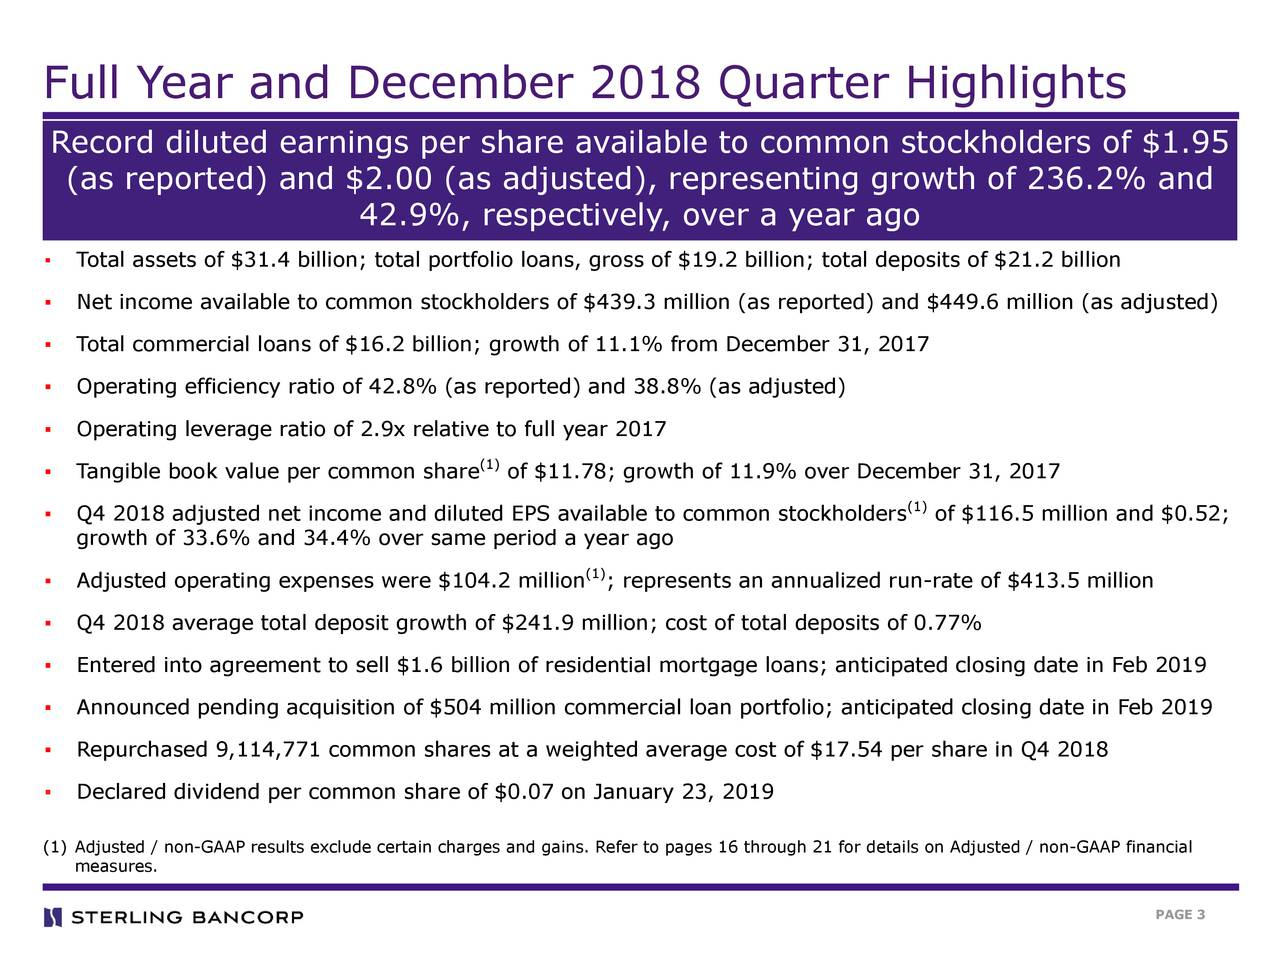 Record diluted earnings per share available to common stockholders of $1.95 (as reported) and $2.00 (as adjusted), representing growth of 236.2% and 42.9%, respectively, over a year ago ▪ Total assets of $31.4 billion; total portfolio loans, gross of $19.2 billion; total deposits of $21.2 billion ▪ Net income available to common stockholders of $439.3 million (as reported) and $449.6 million (as adjusted) ▪ Total commercial loans of $16.2 billion; growth of 11.1% from December 31, 2017 ▪ Operating efficiency ratio of 42.8% (as reported) and 38.8% (as adjusted) ▪ Operating leverage ratio of 2.9x relative to full year 2017 ▪ Tangible book value per common share (1)of $11.78; growth of 11.9% over December 31, 2017 ▪ Q4 2018 adjusted net income and diluted EPS available to common stockholders (1of $116.5 million and $0.52; growth of 33.6% and 34.4% over same period a year ago (1) ▪ Adjusted operating expenses were $104.2 million ; represents an annualized run-rate of $413.5 million ▪ Q4 2018 average total deposit growth of $241.9 million; cost of total deposits of 0.77% ▪ Entered into agreement to sell $1.6 billion of residential mortgage loans; anticipated closing date in Feb 2019 ▪ Announced pending acquisition of $504 million commercial loan portfolio; anticipated closing date in Feb 2019 ▪ Repurchased 9,114,771 common shares at a weighted average cost of $17.54 per share in Q4 2018 ▪ Declared dividend per common share of $0.07 on January 23, 2019 (1) Adjusted / non-GAAP results exclude certain charges and gains. Refer to pages 16 through 21 for details on Adjusted / non-GAAP financial measures. PAGE 3